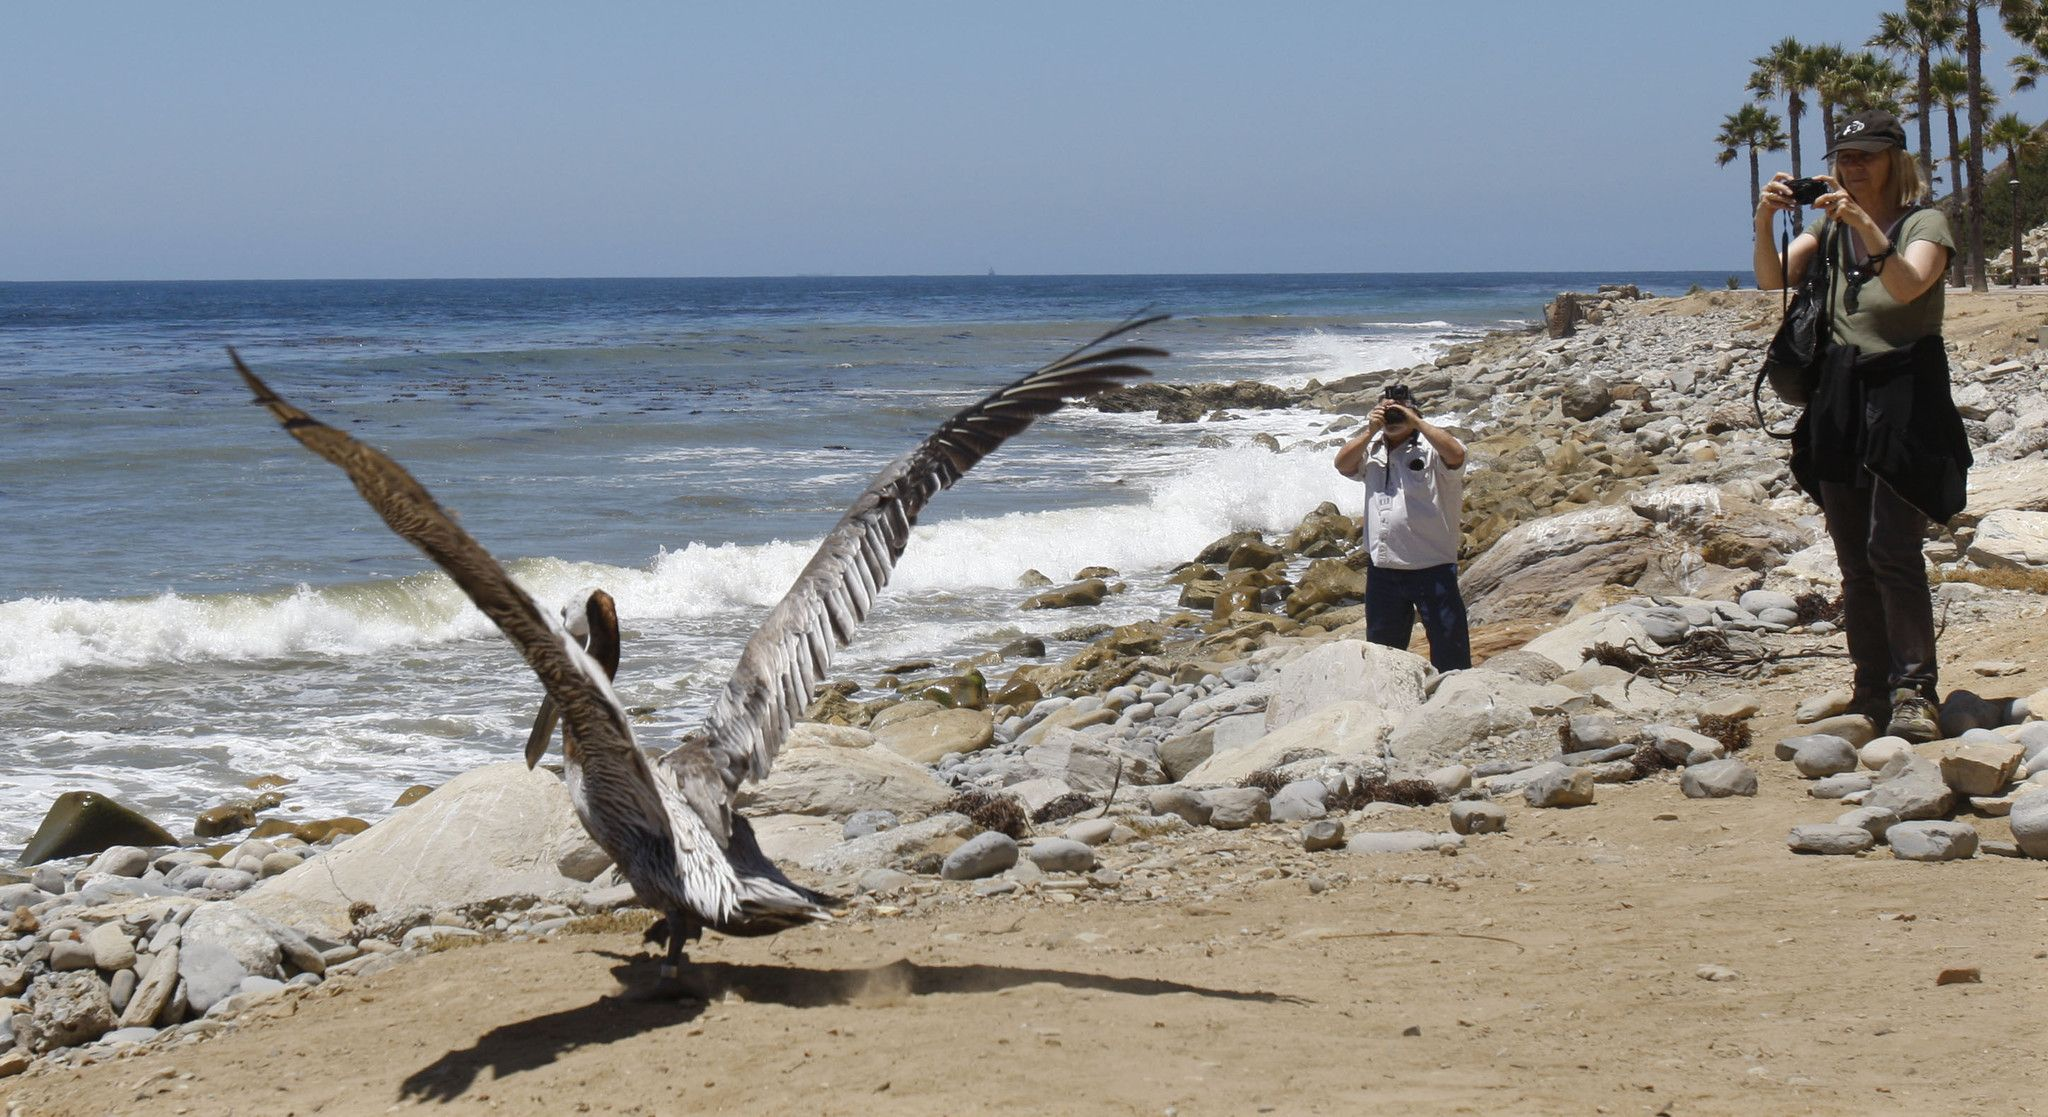 Pelican whose mutilation sparked outrage is released into the wild  It happened quickly, much like his recovery.   http://www.latimes.com/local/lanow/la-me-ln-mutilated-pelican-released-into-wild-20140603-story.html